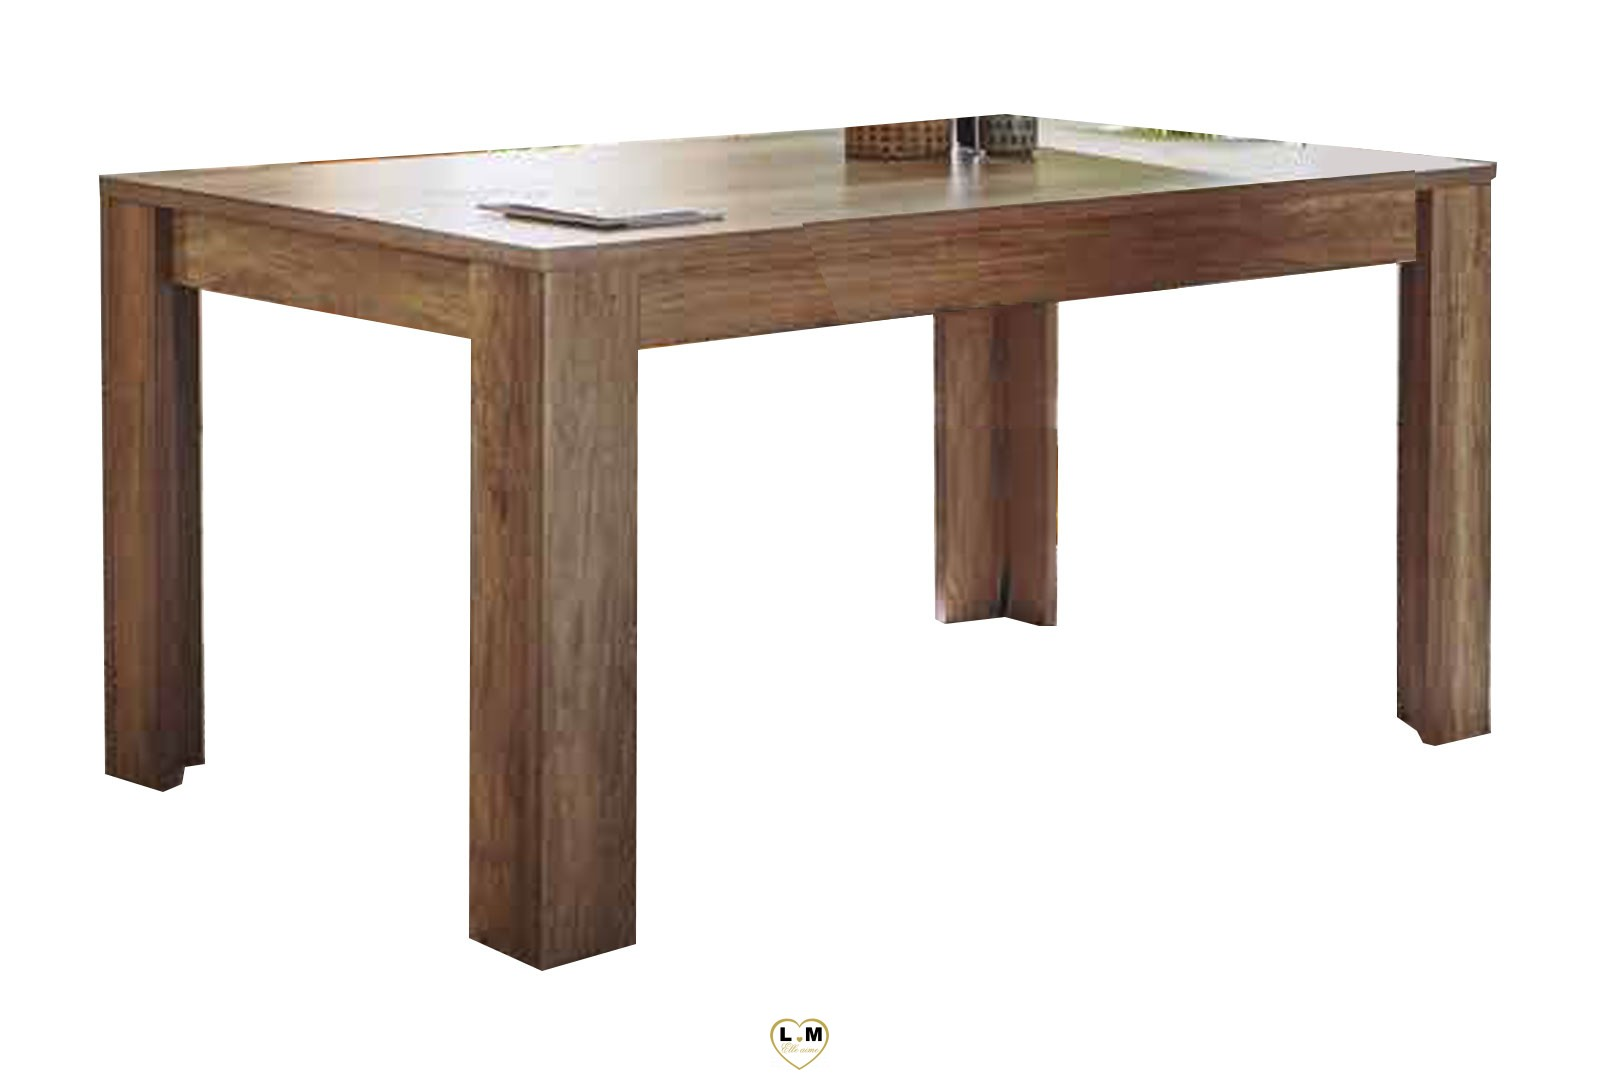 andalucia sejour salle a manger nature la grande table. Black Bedroom Furniture Sets. Home Design Ideas